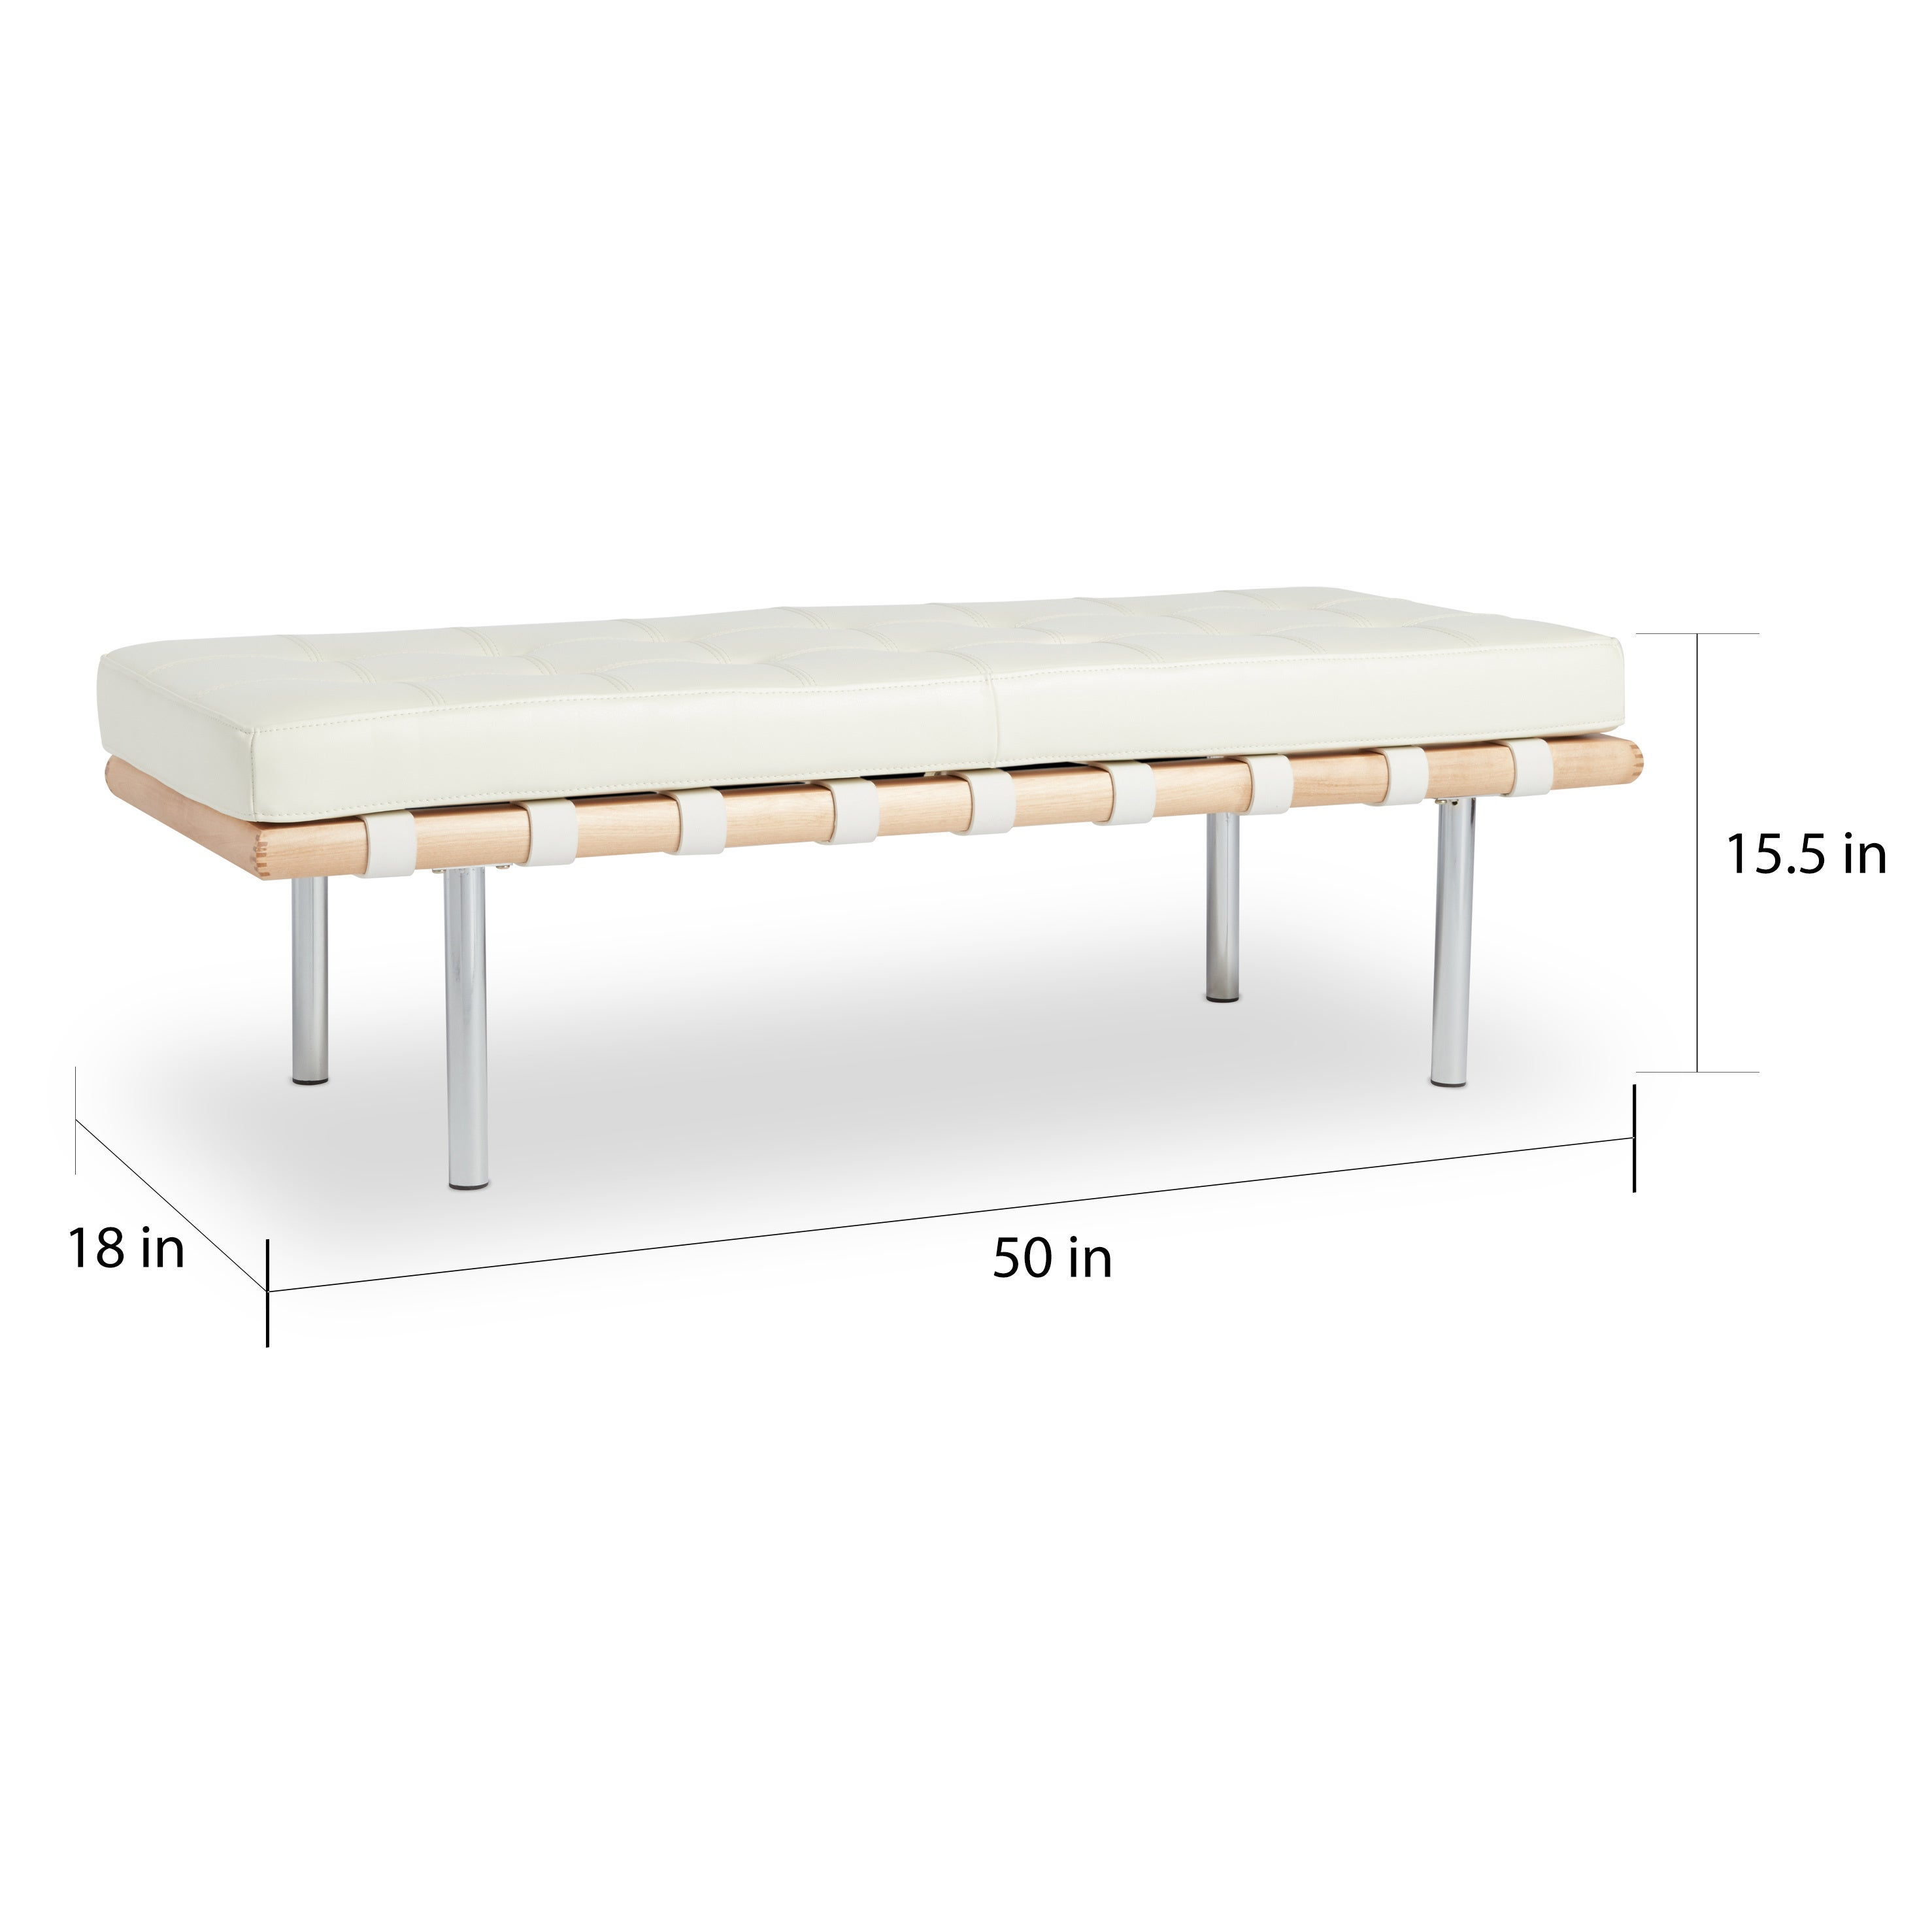 Shop strick bolton andalucia modern white leather bench 50 inches long free shipping today overstock com 5594689